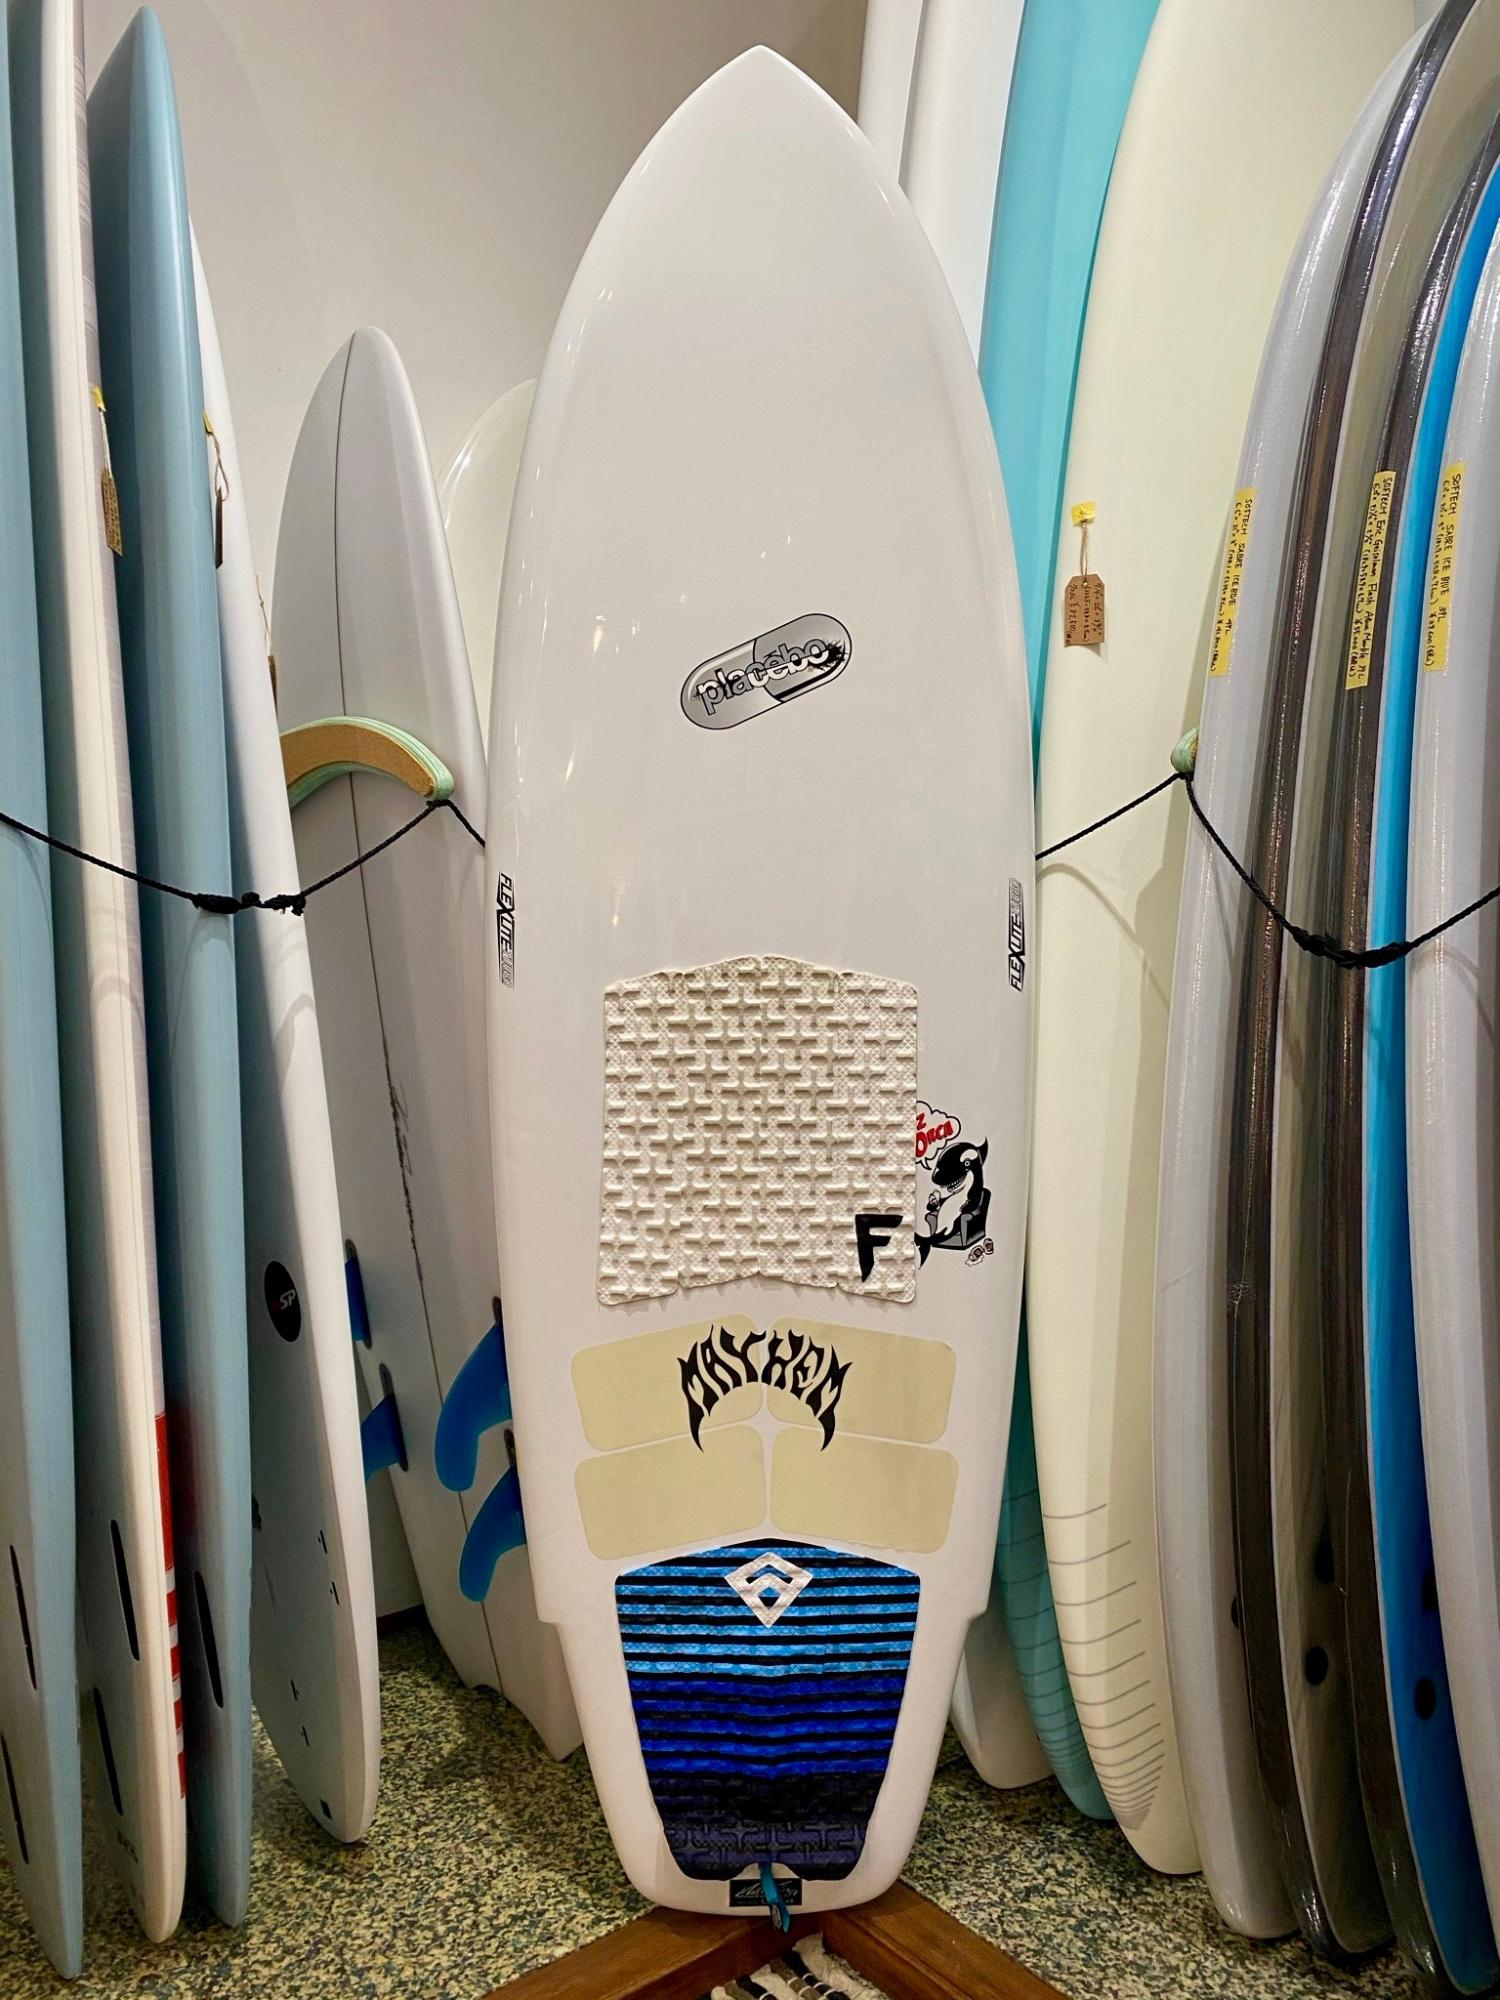 USED SURF BOARDS (PLACEBO LAYZ ORCA 6.0 )